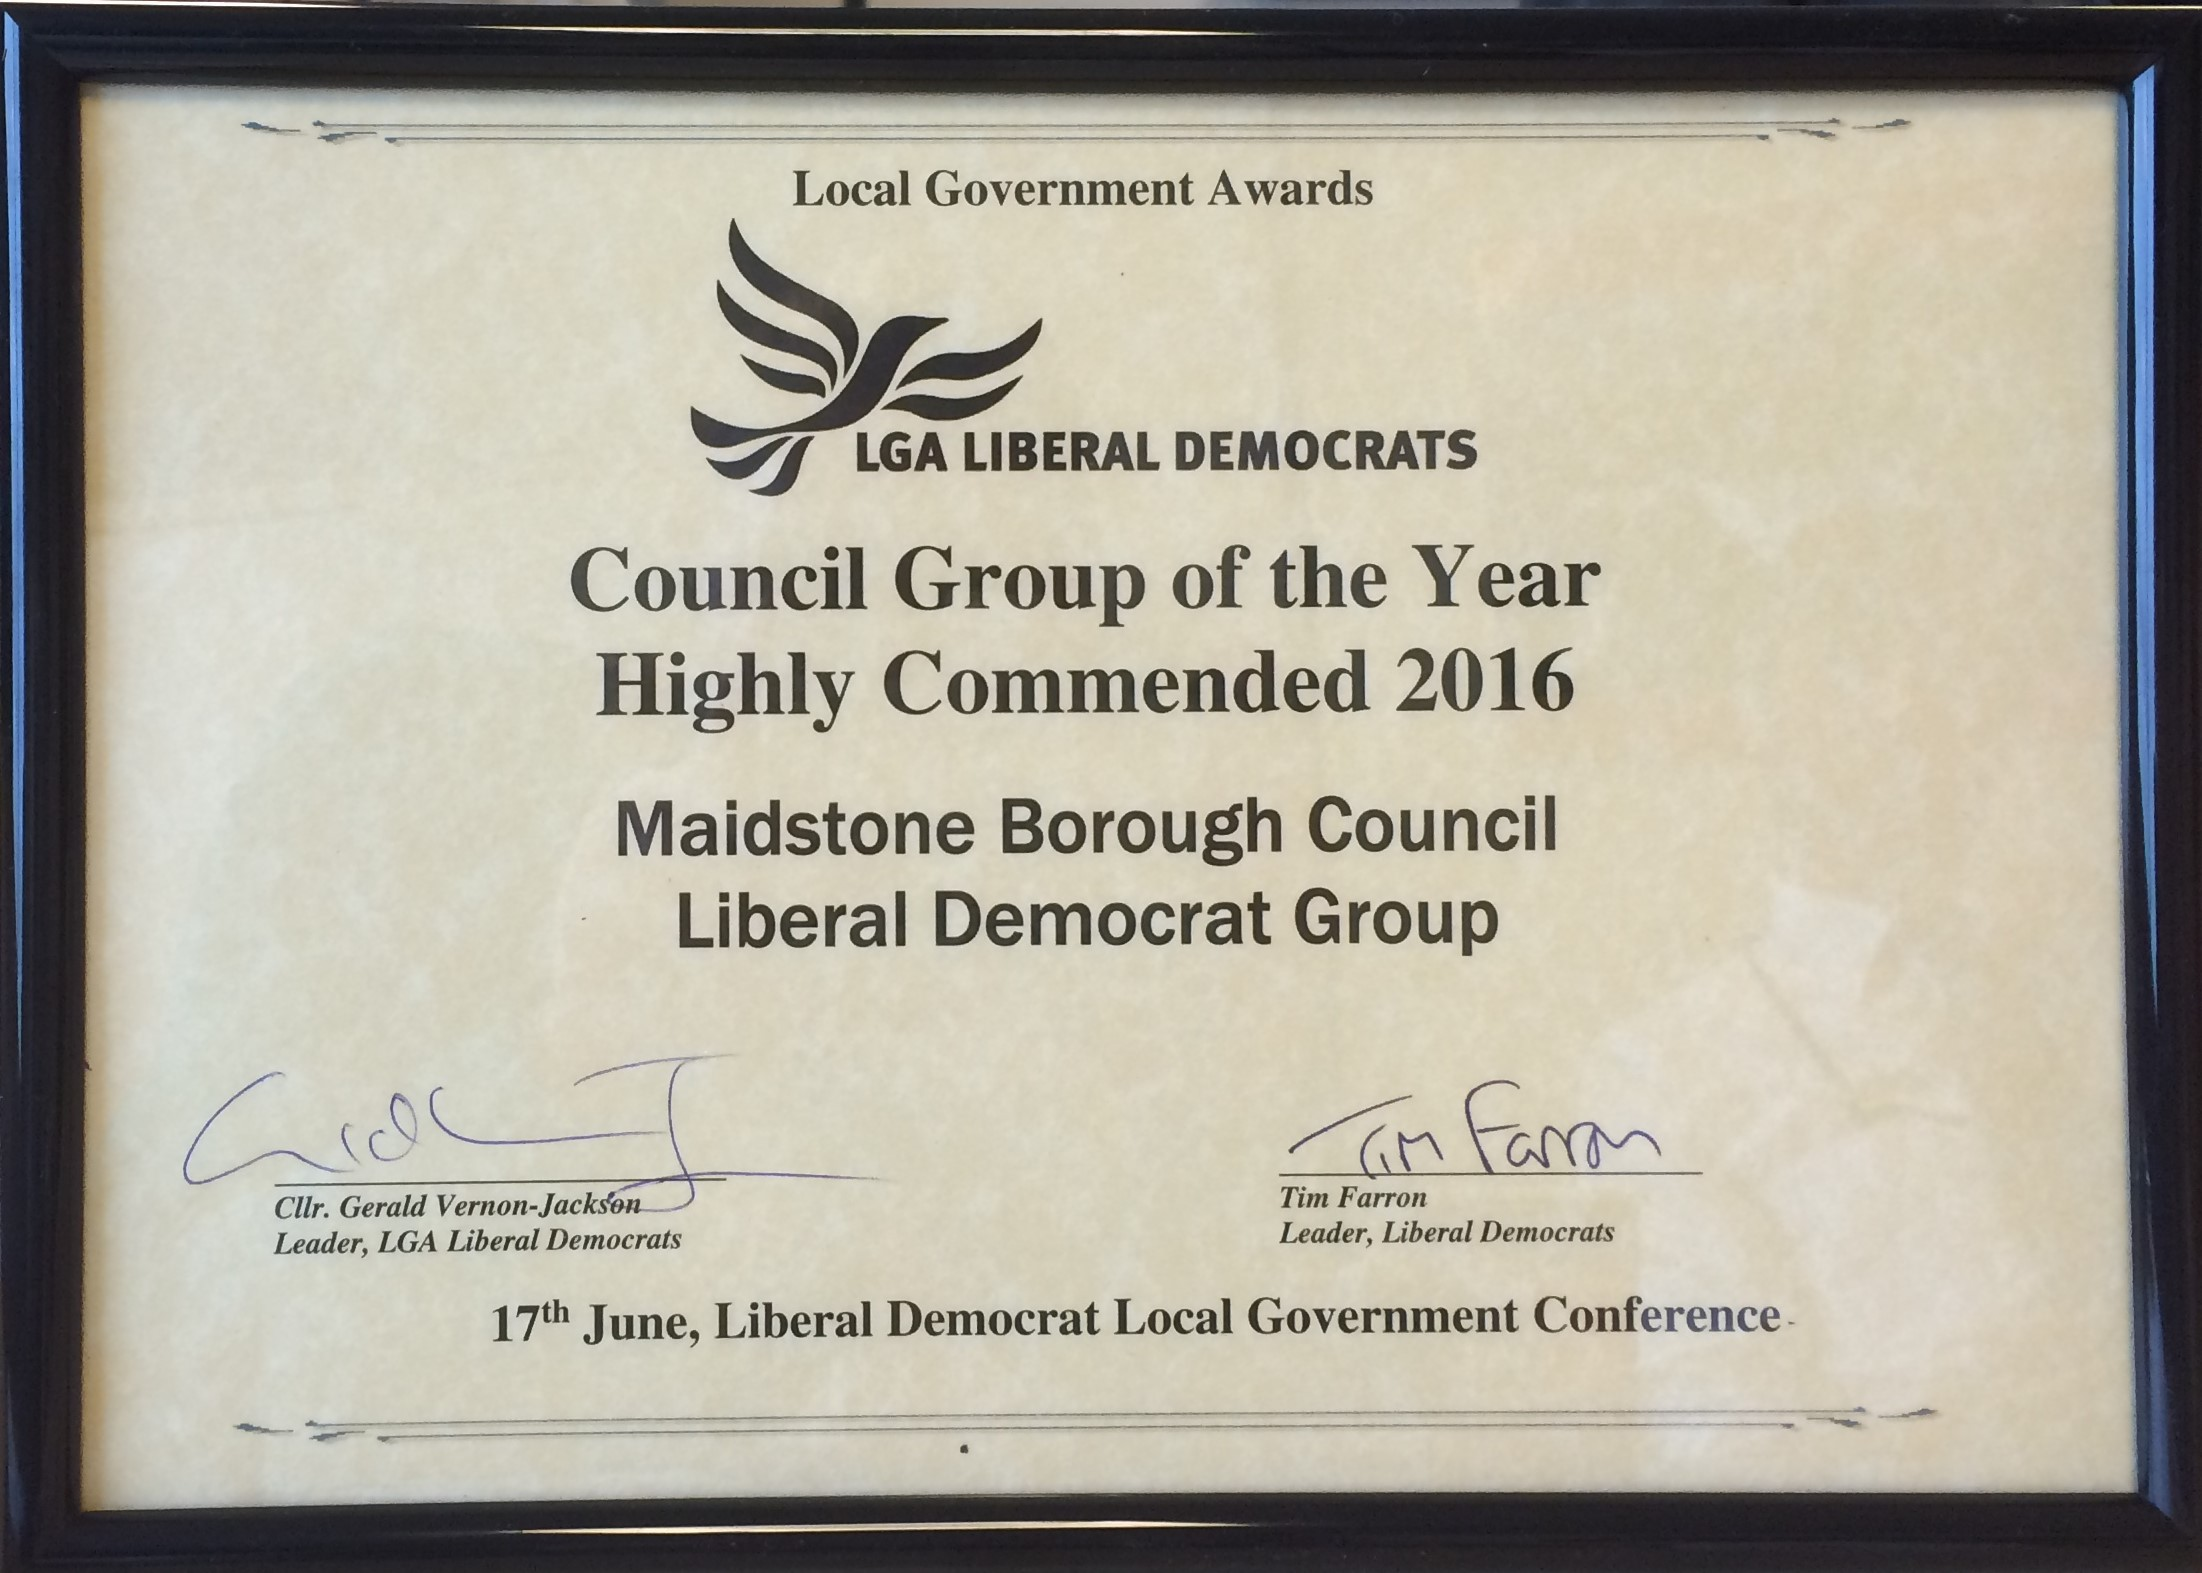 News From Our Maidstone Borough Councillors